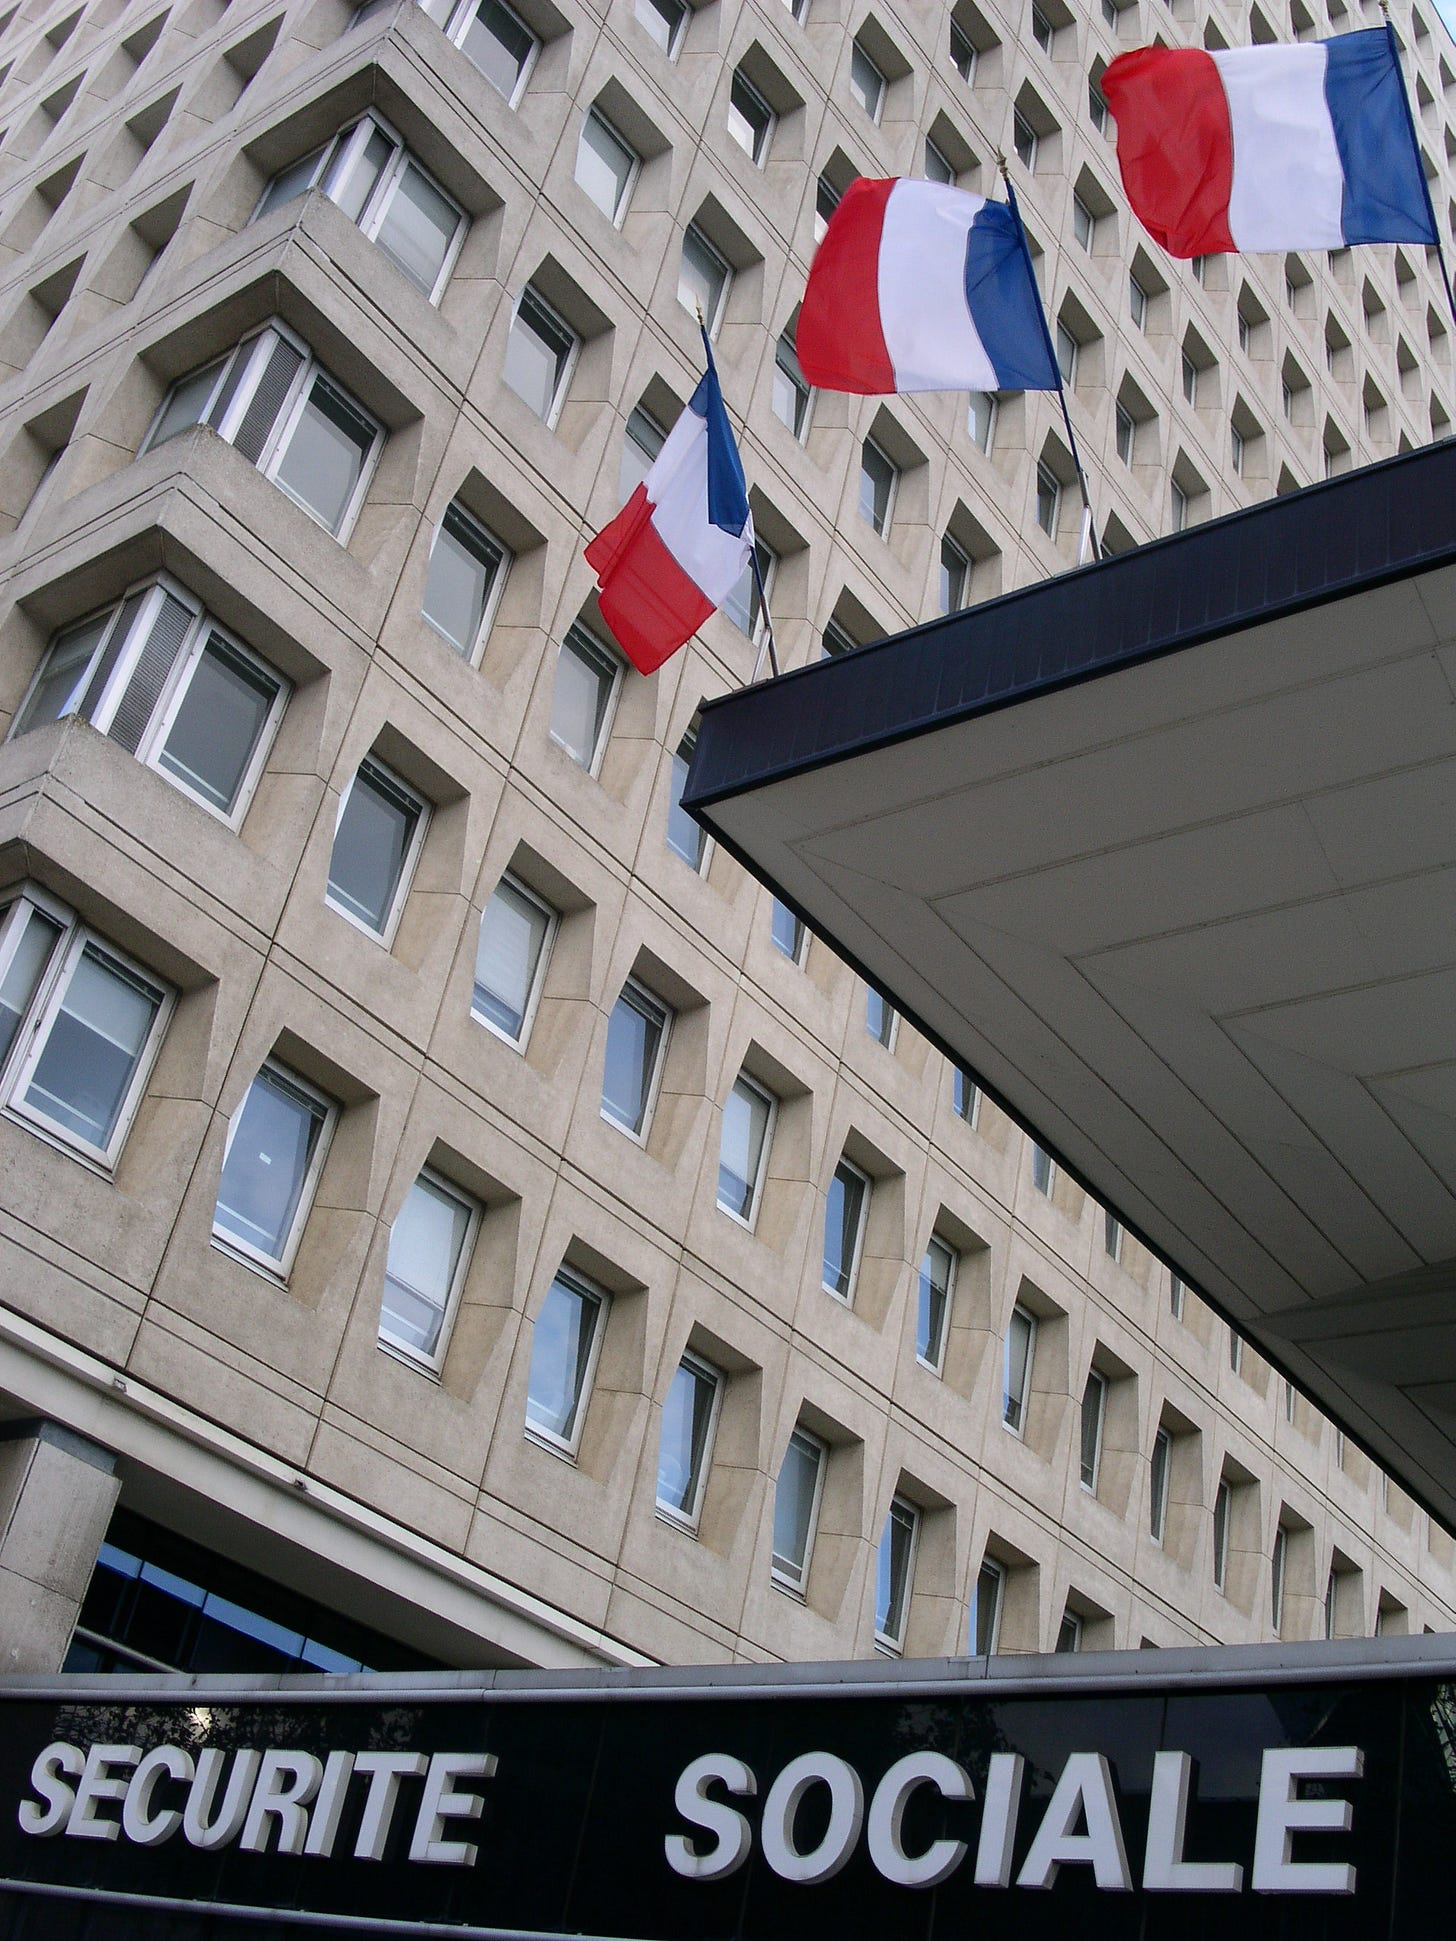 Social security in France - Wikipedia